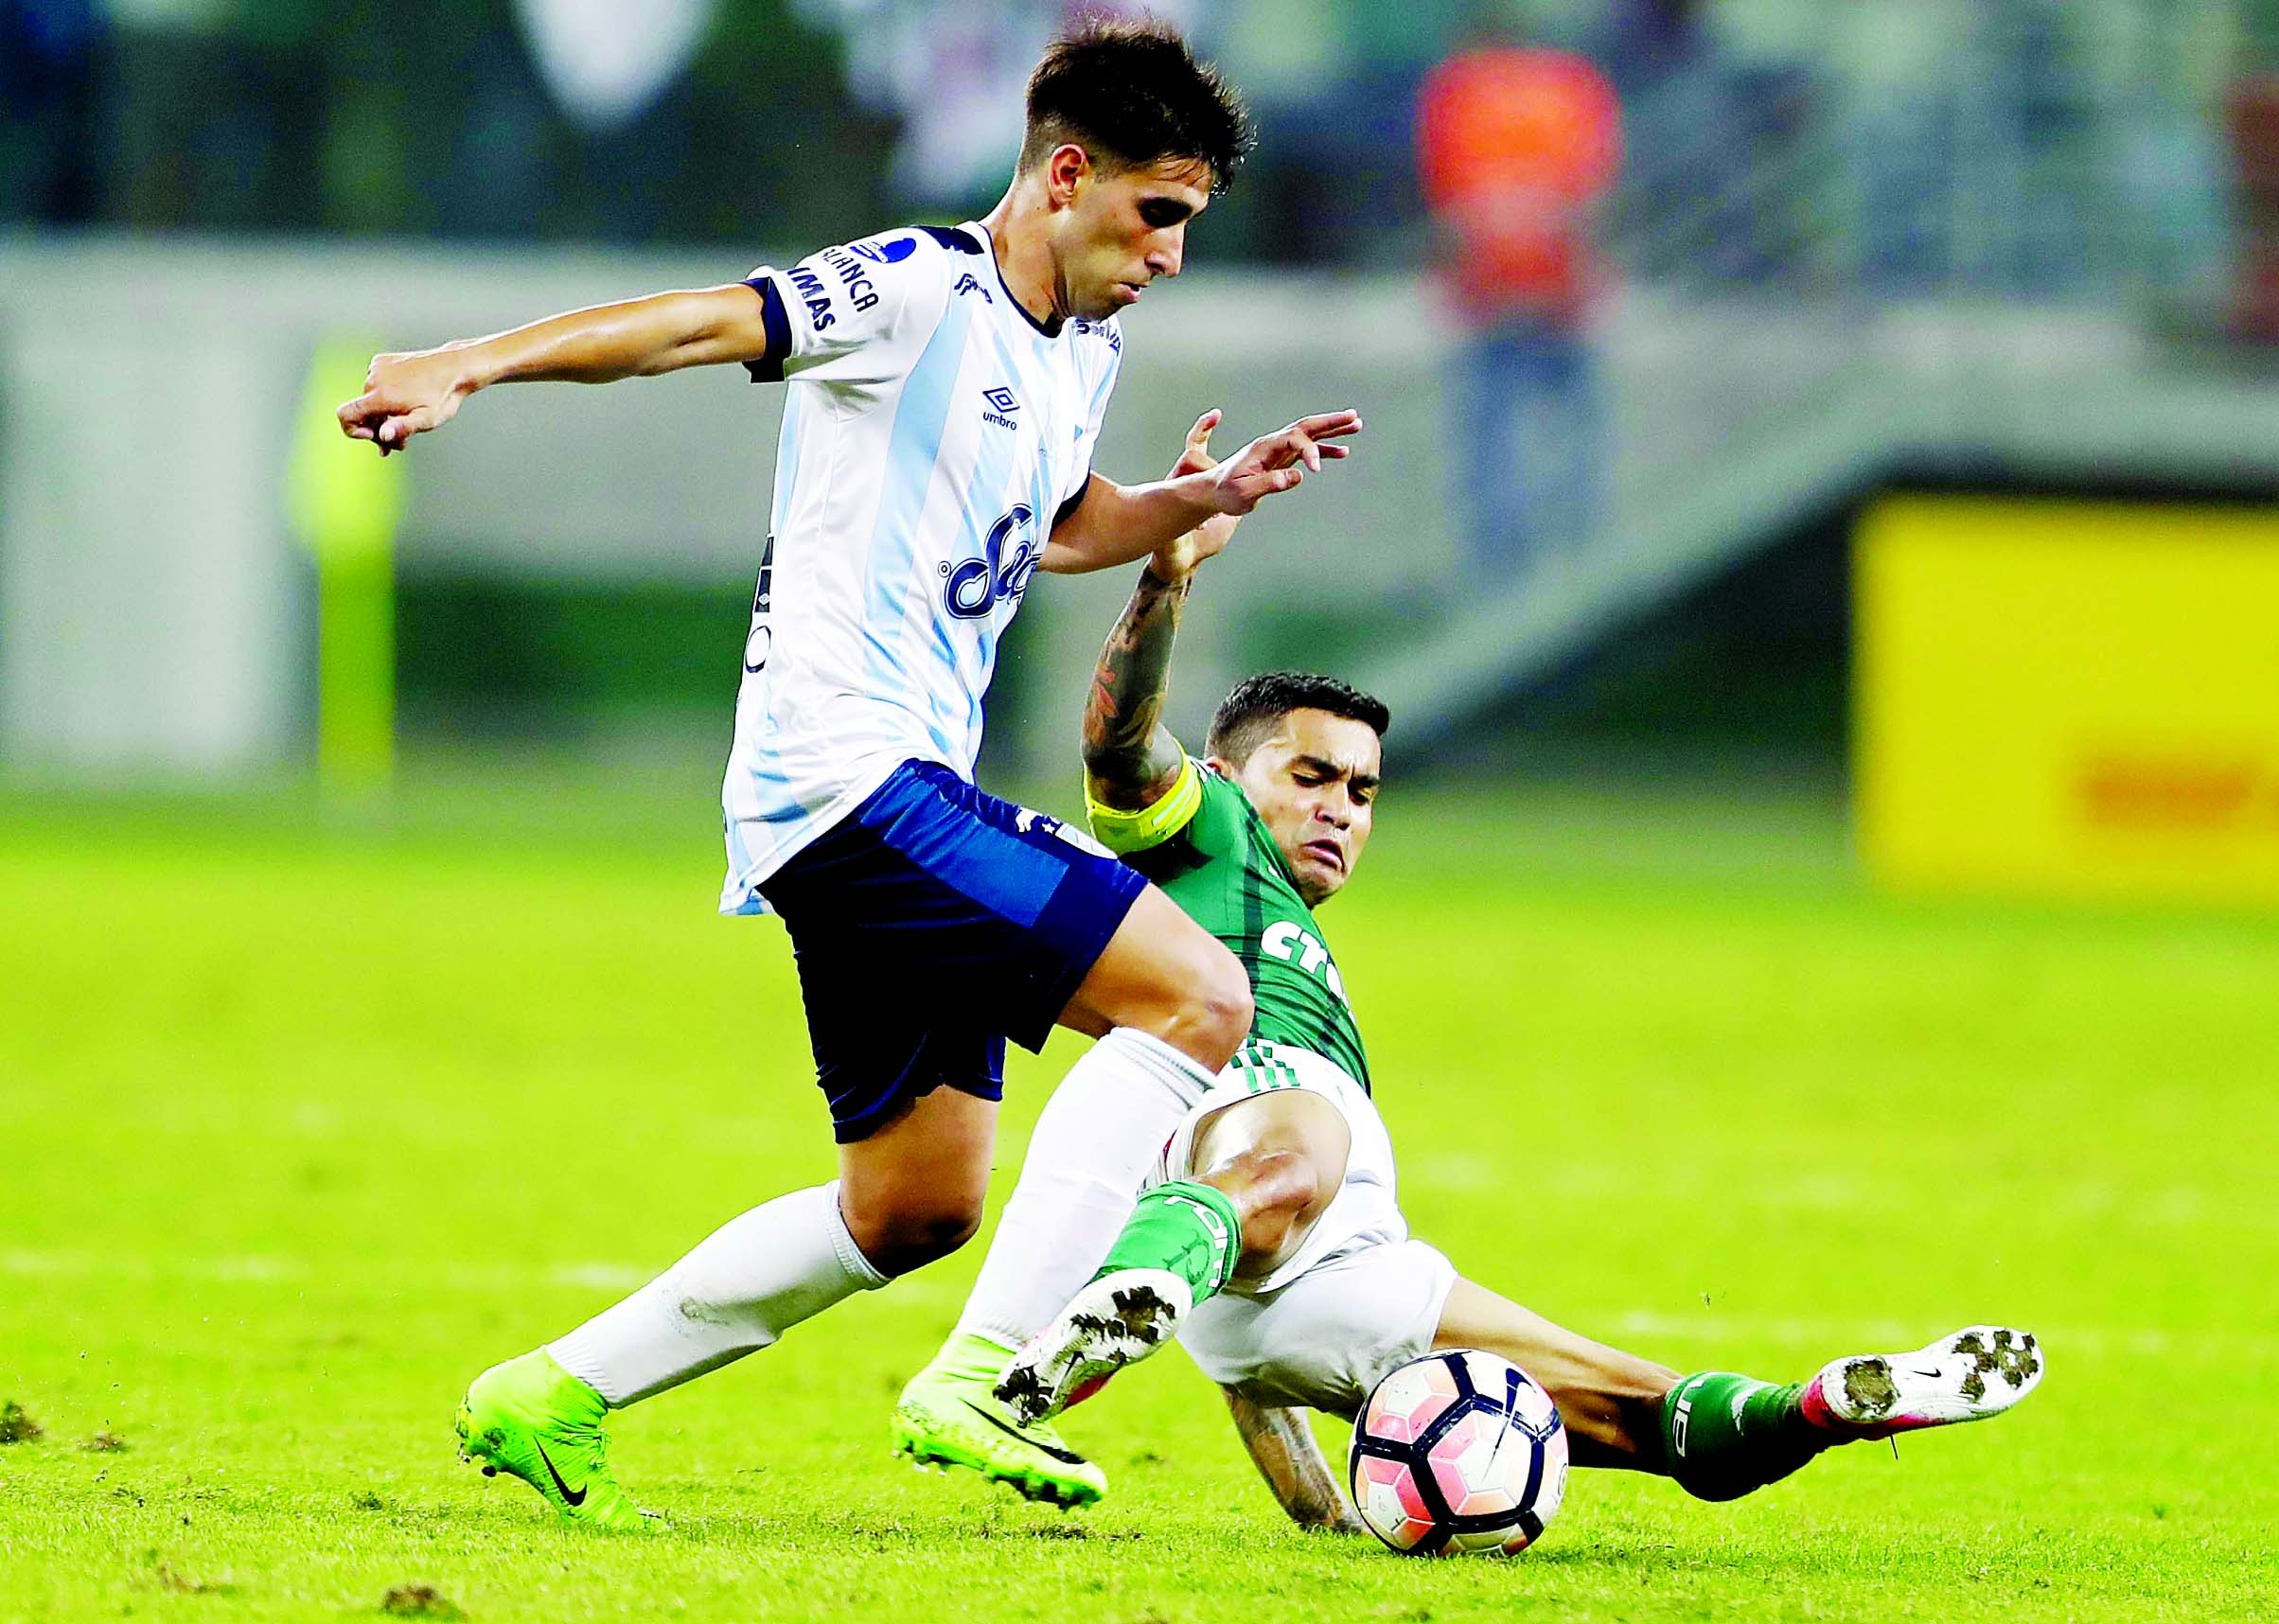 Dudu of Brazil`s Palmeiras (right) fights for the ball with Leonel Di Placido of Argentina`s Atletico Tucuman, during a Copa Libertadores soccer match in Sao Paulo, Brazil on Wednesday.